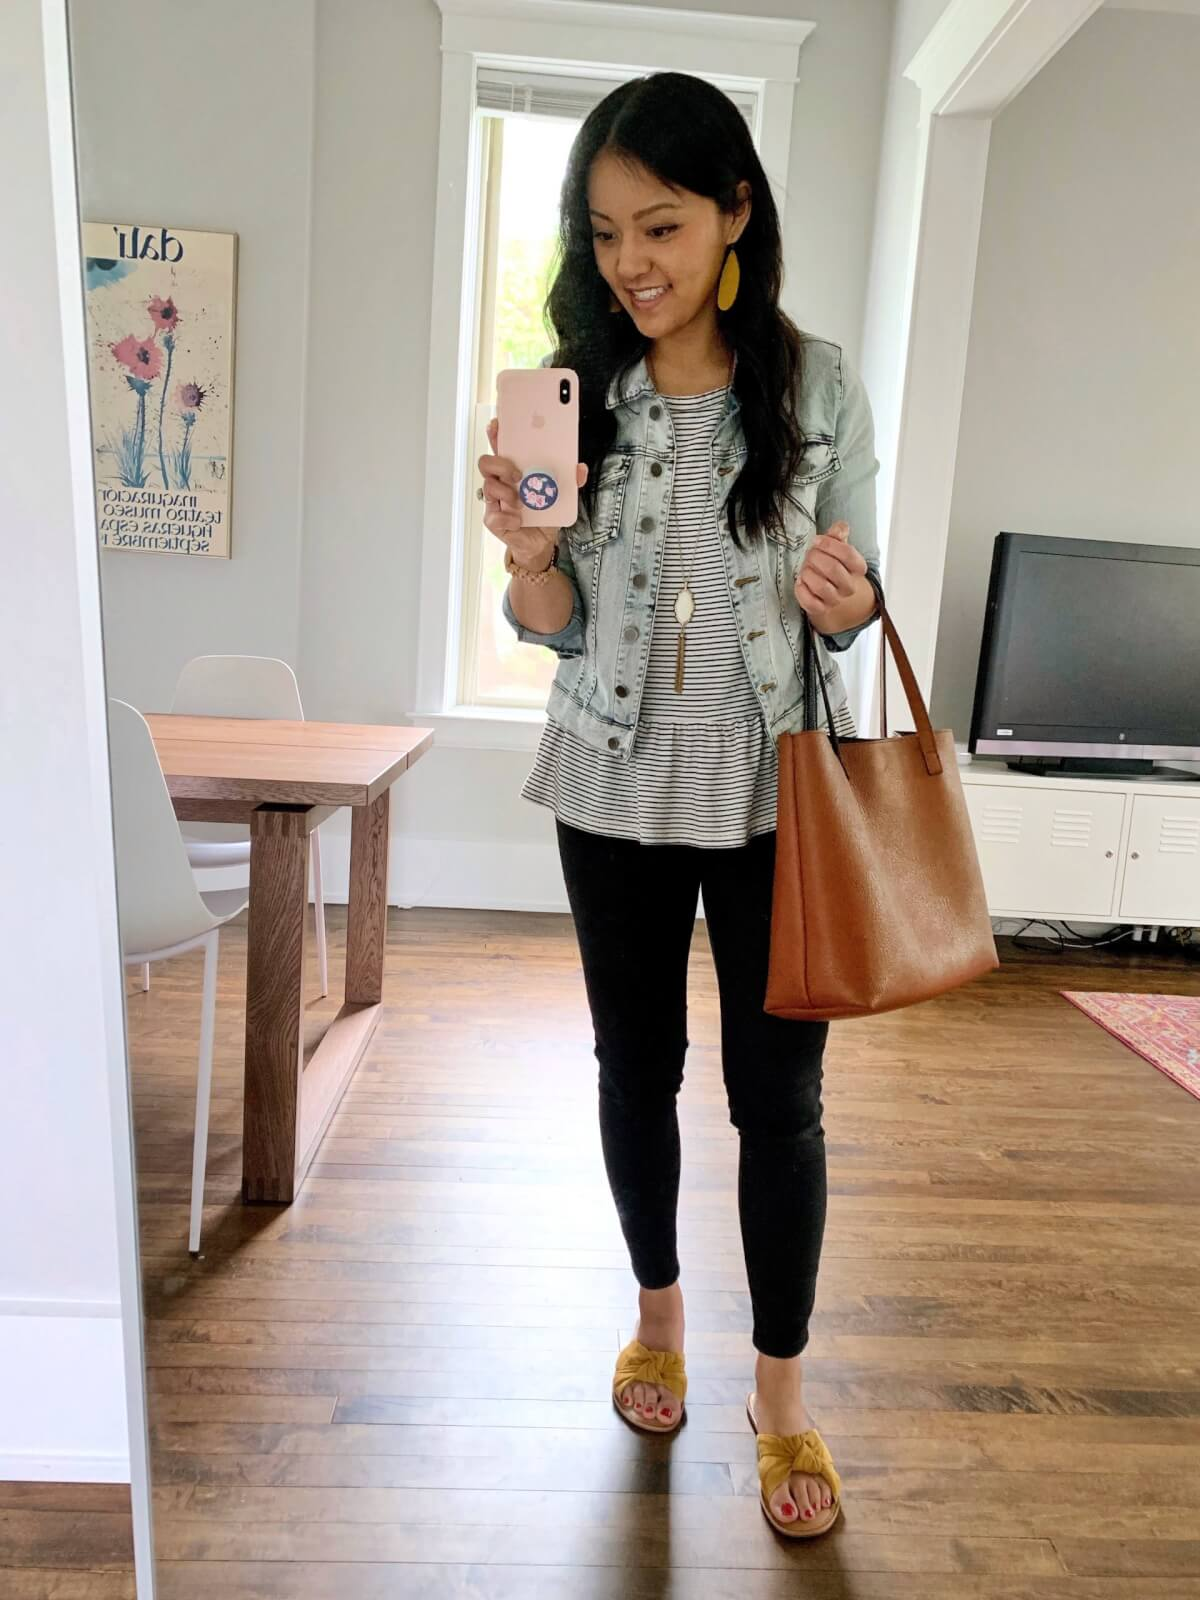 denim jacket outfit: denim jacket + striped peplum tee + black jeans + yellow sandals + brown tote + pendant necklace + yellow earrings